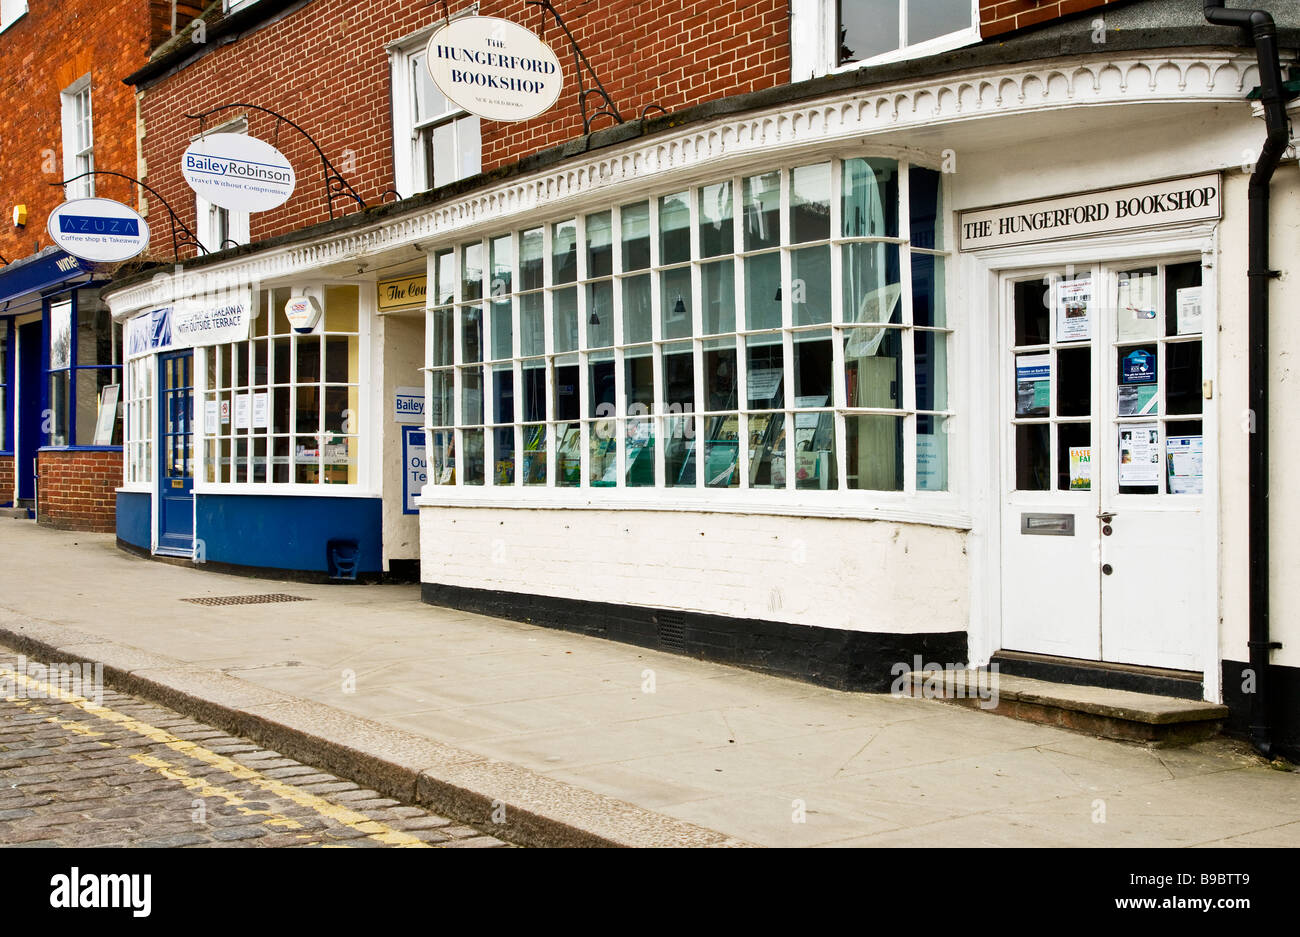 An independent bookshop and others along the High Street in Hungerford Berkshire England UK - Stock Image